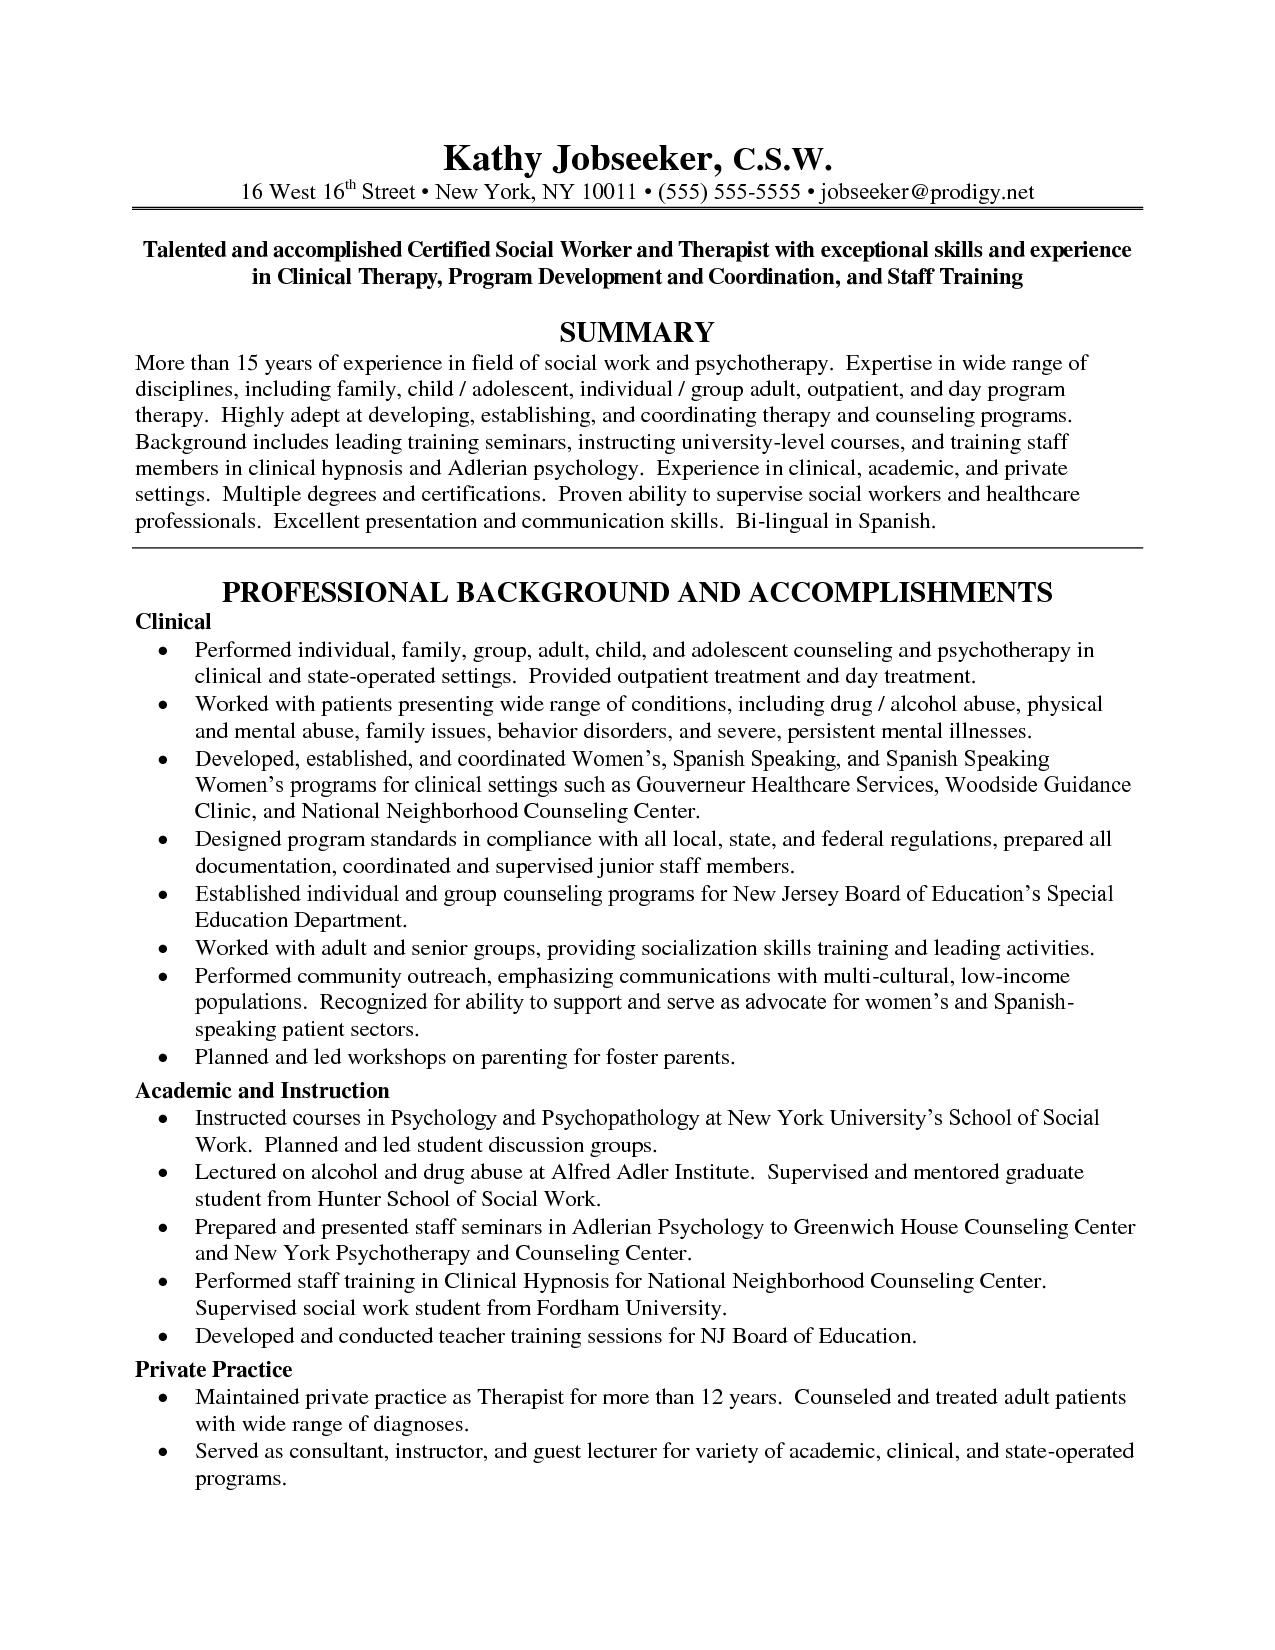 social work resume examples - Examples Of Work Resumes